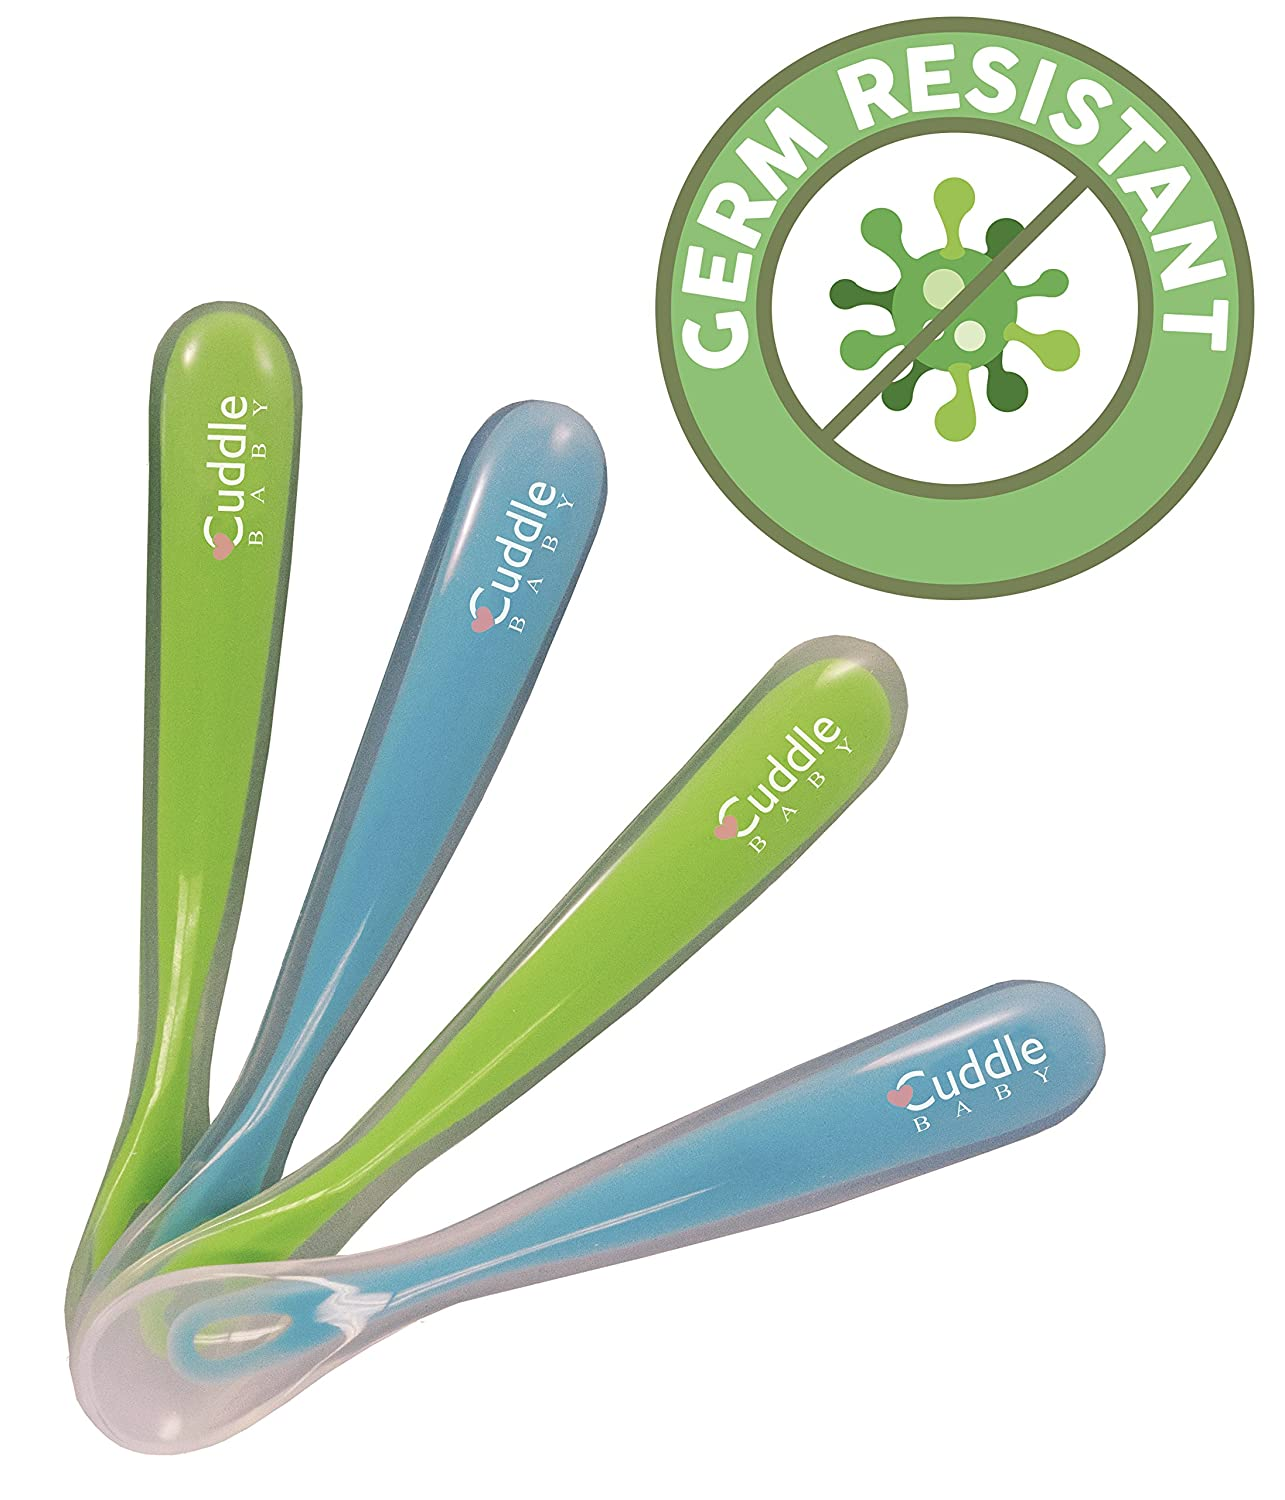 Cuddle Baby Gum-Friendly First Stage Soft Tip Silicone Feeding Spoons for Babies, Great Infant Gift Set (No BPA, lead, phthalate and plastic) Baby Blue/Green B01IPN8BPO